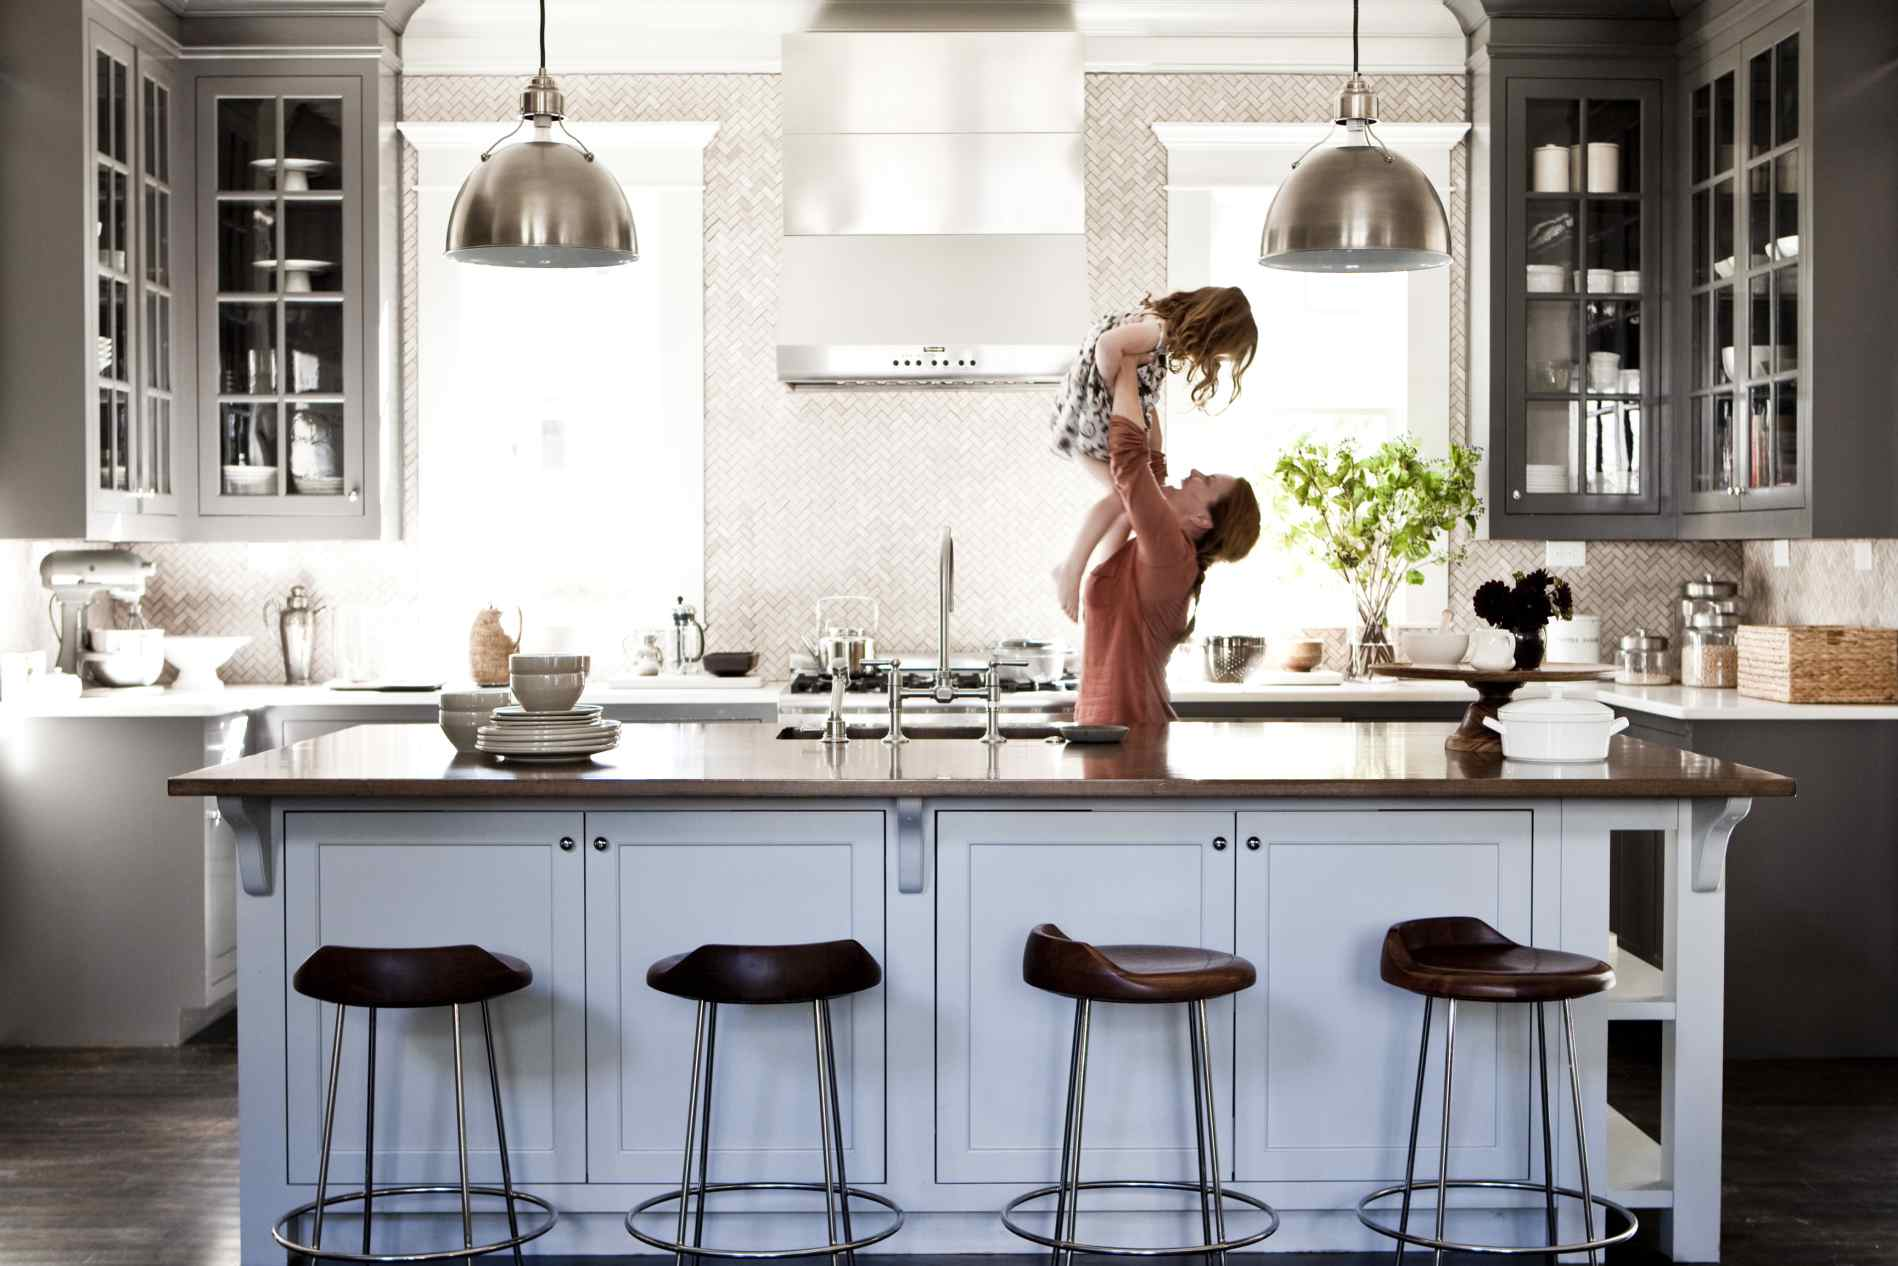 Kitchen Remodeling A Overview Home Electrical Wiring System Diy Improvement Tips Ideas